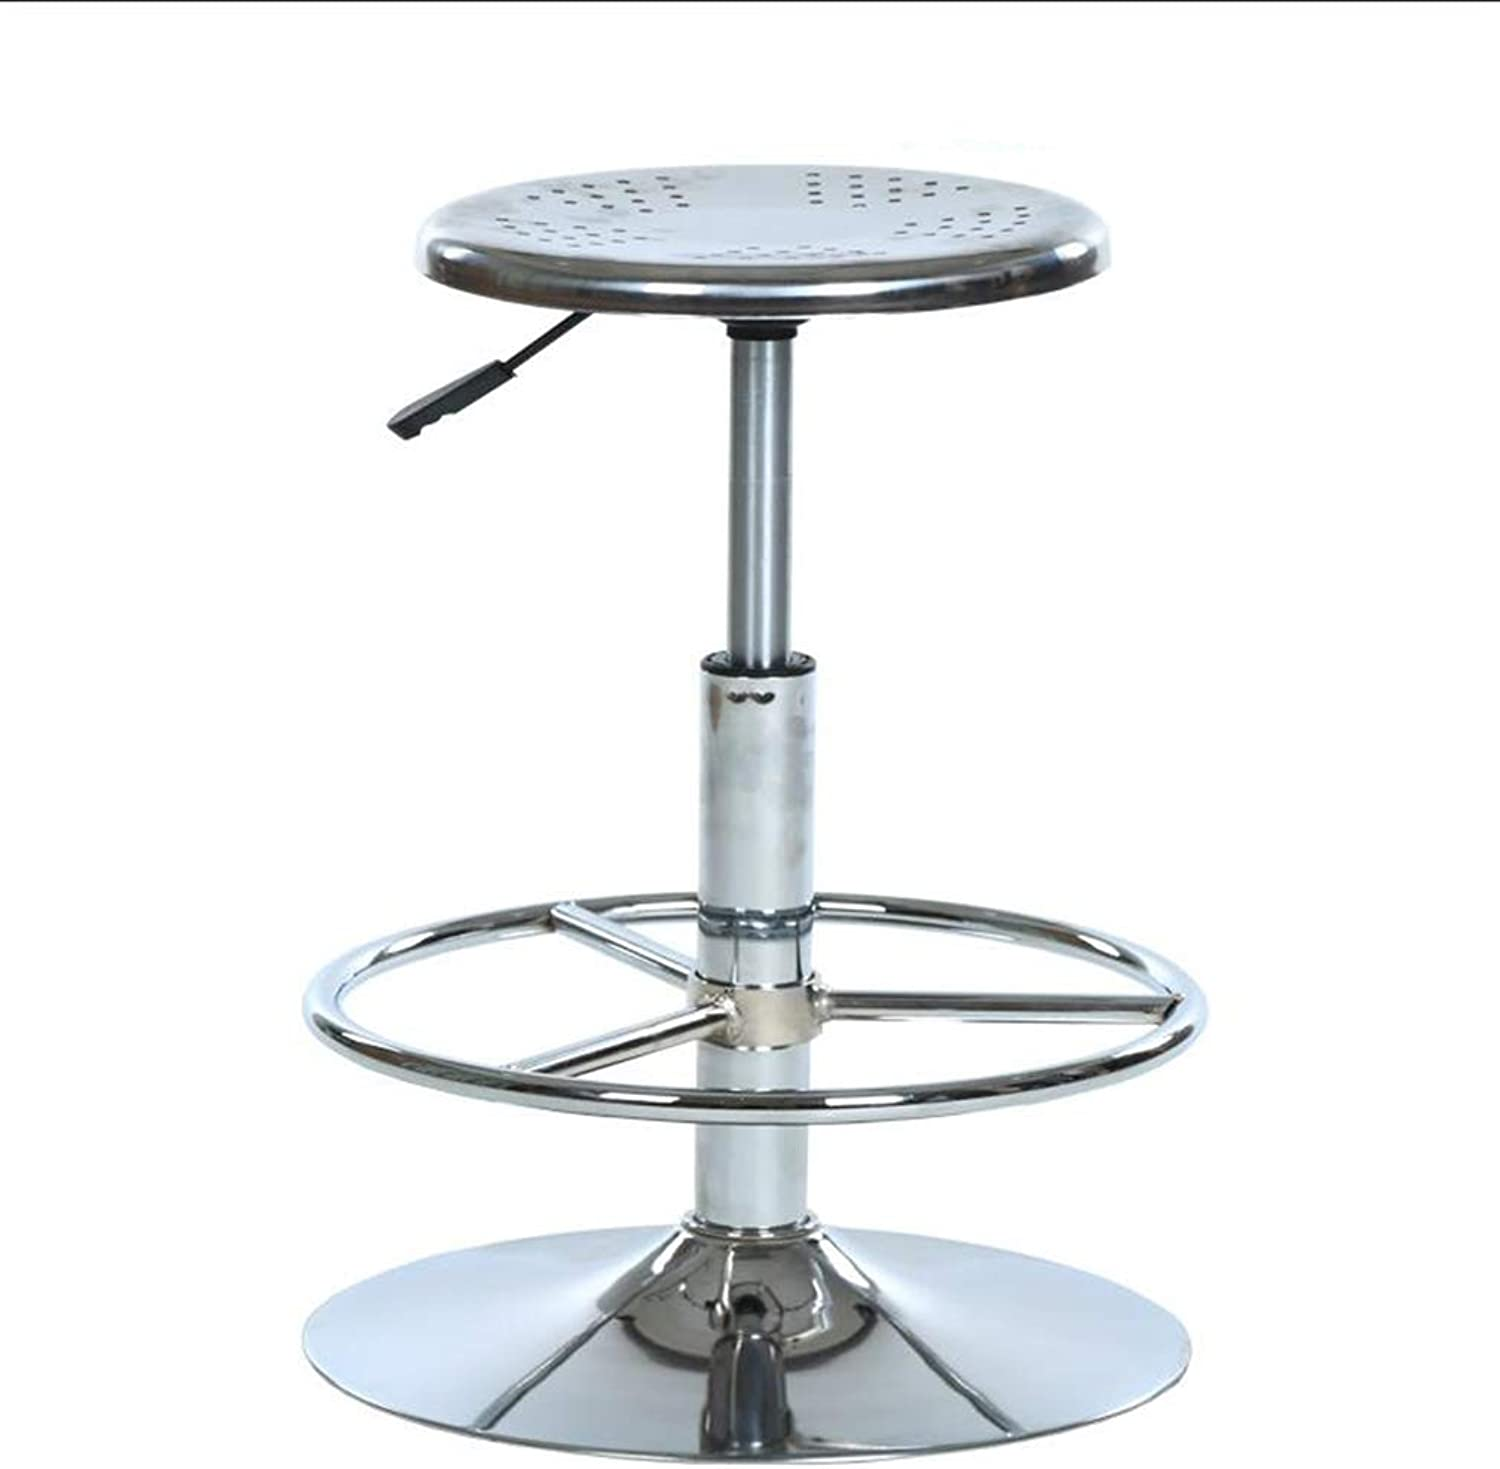 AGLZWY Bar Stool Multipurpose Metal Assembled Adjustable 360° redate Fashion High Stool, A Variety of Sizes (color   A, Size   32X45-55cm)